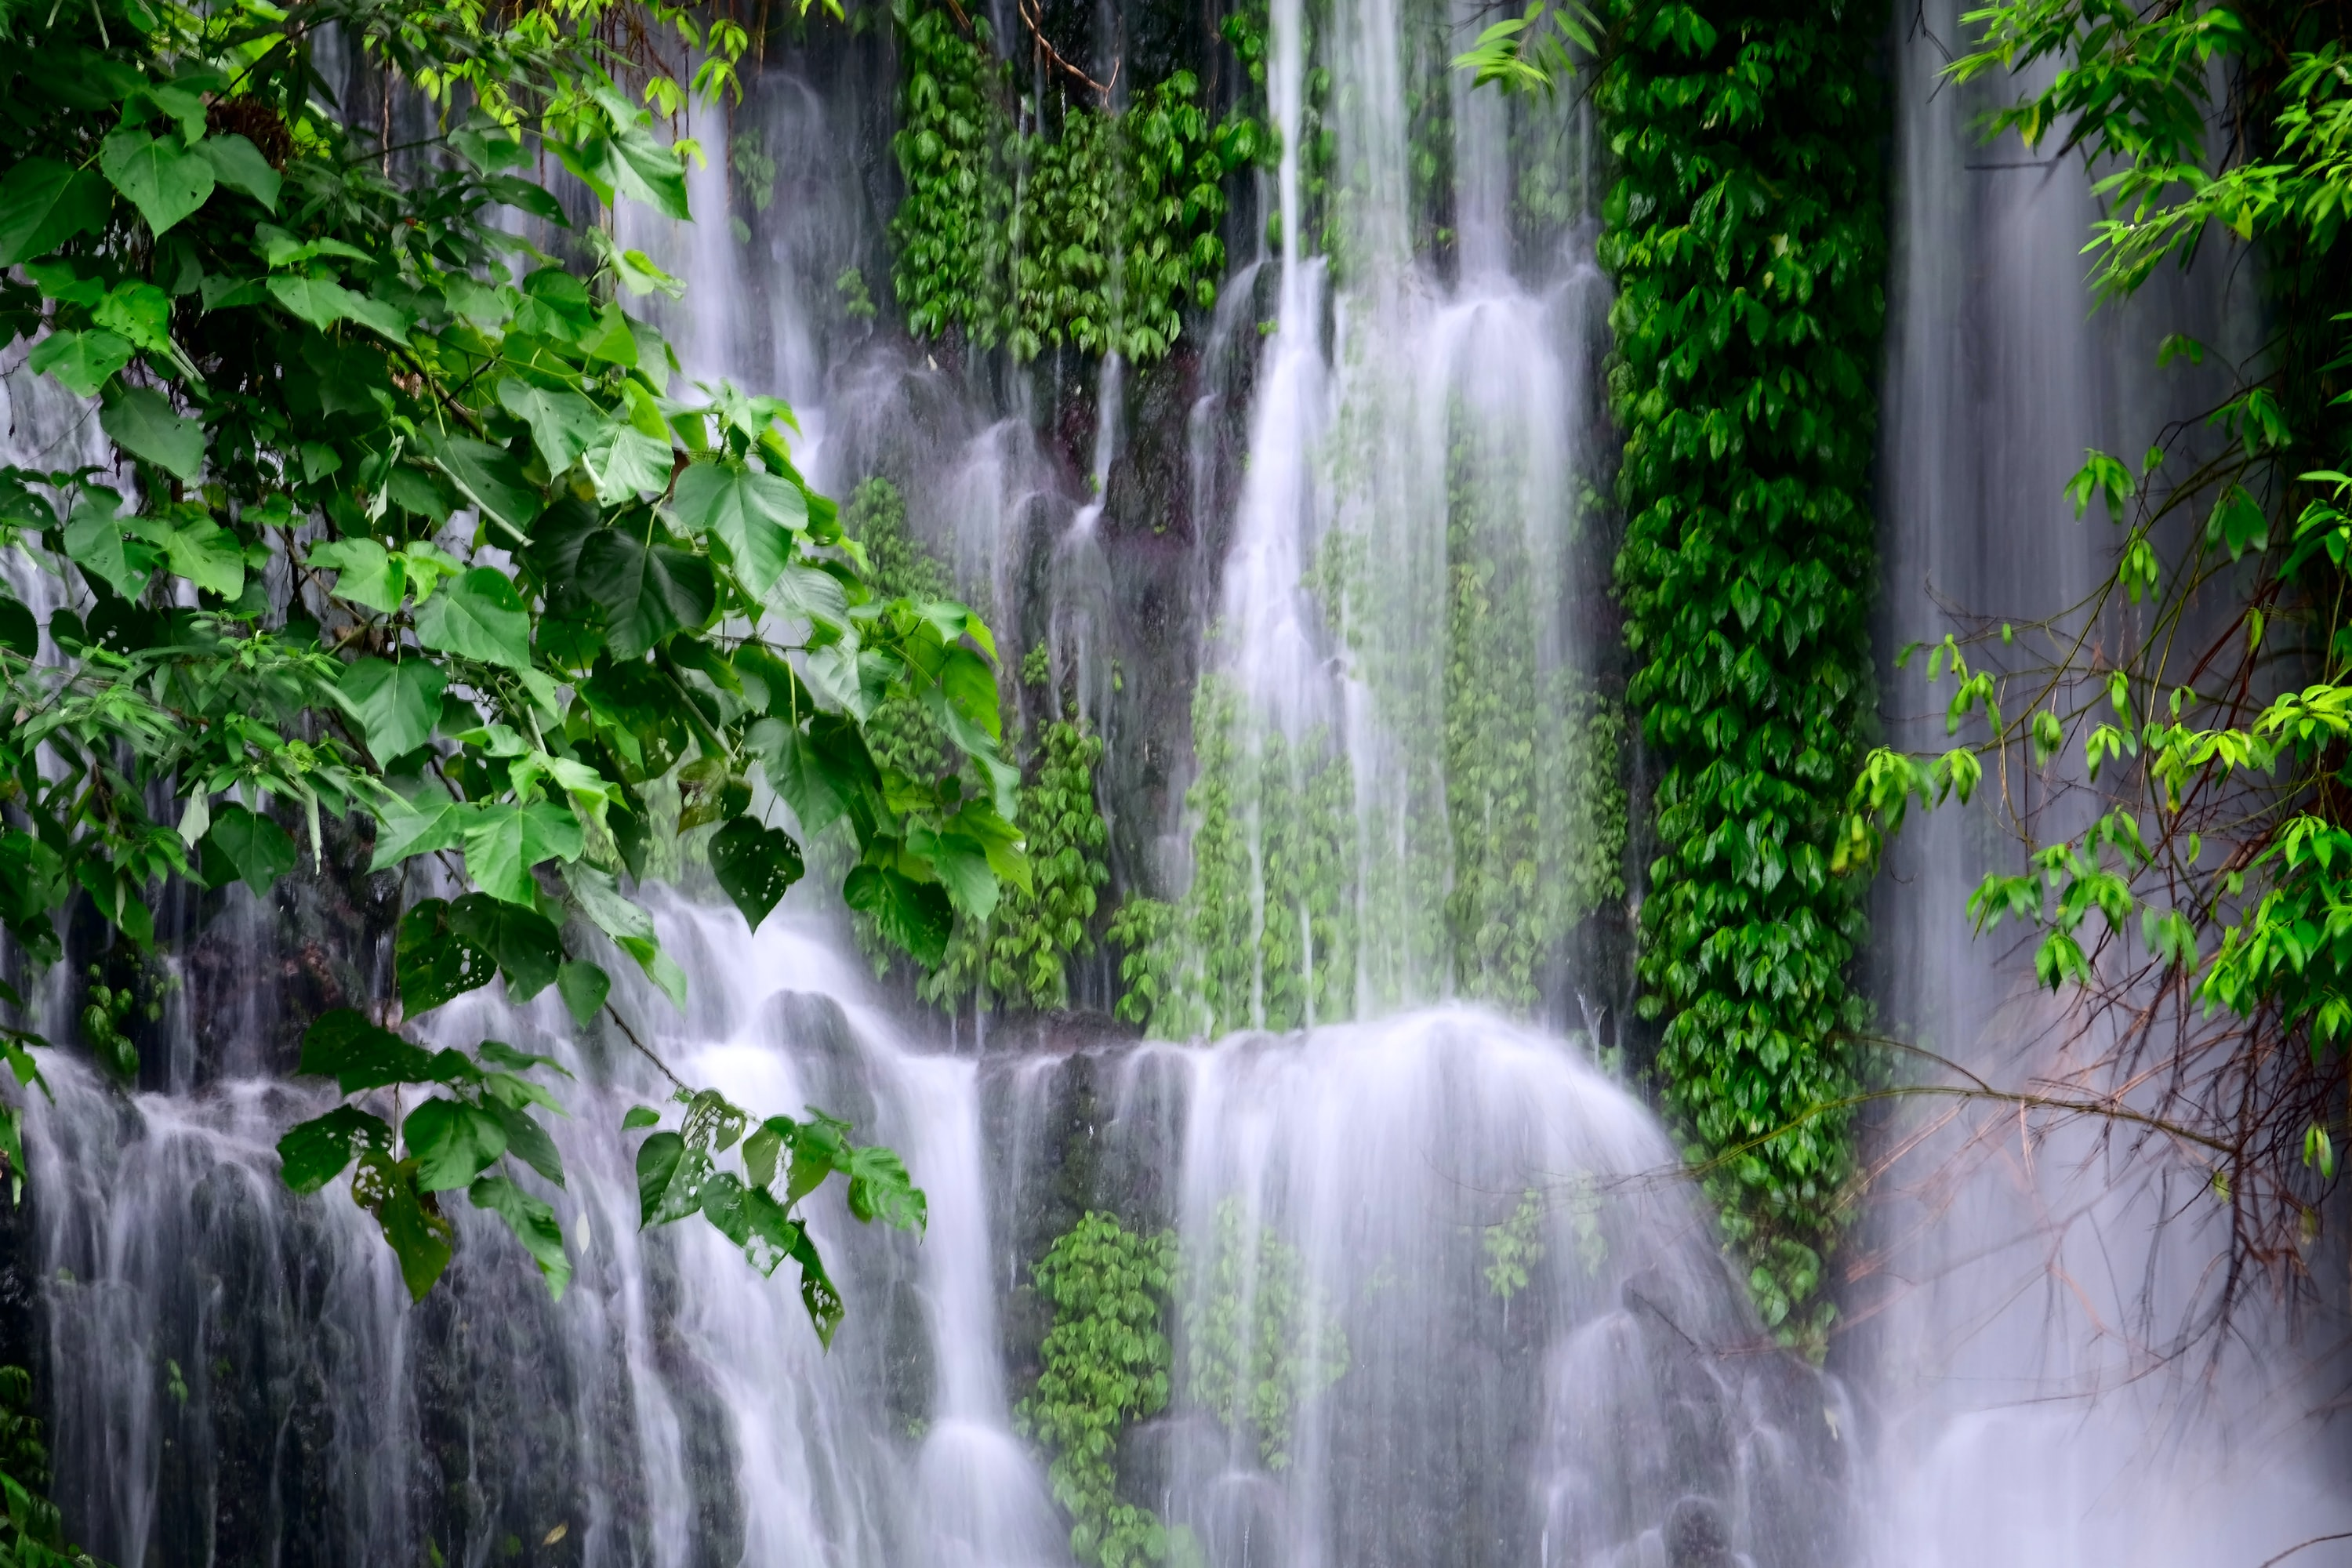 waterfall surrounded by green plants taken at daytime